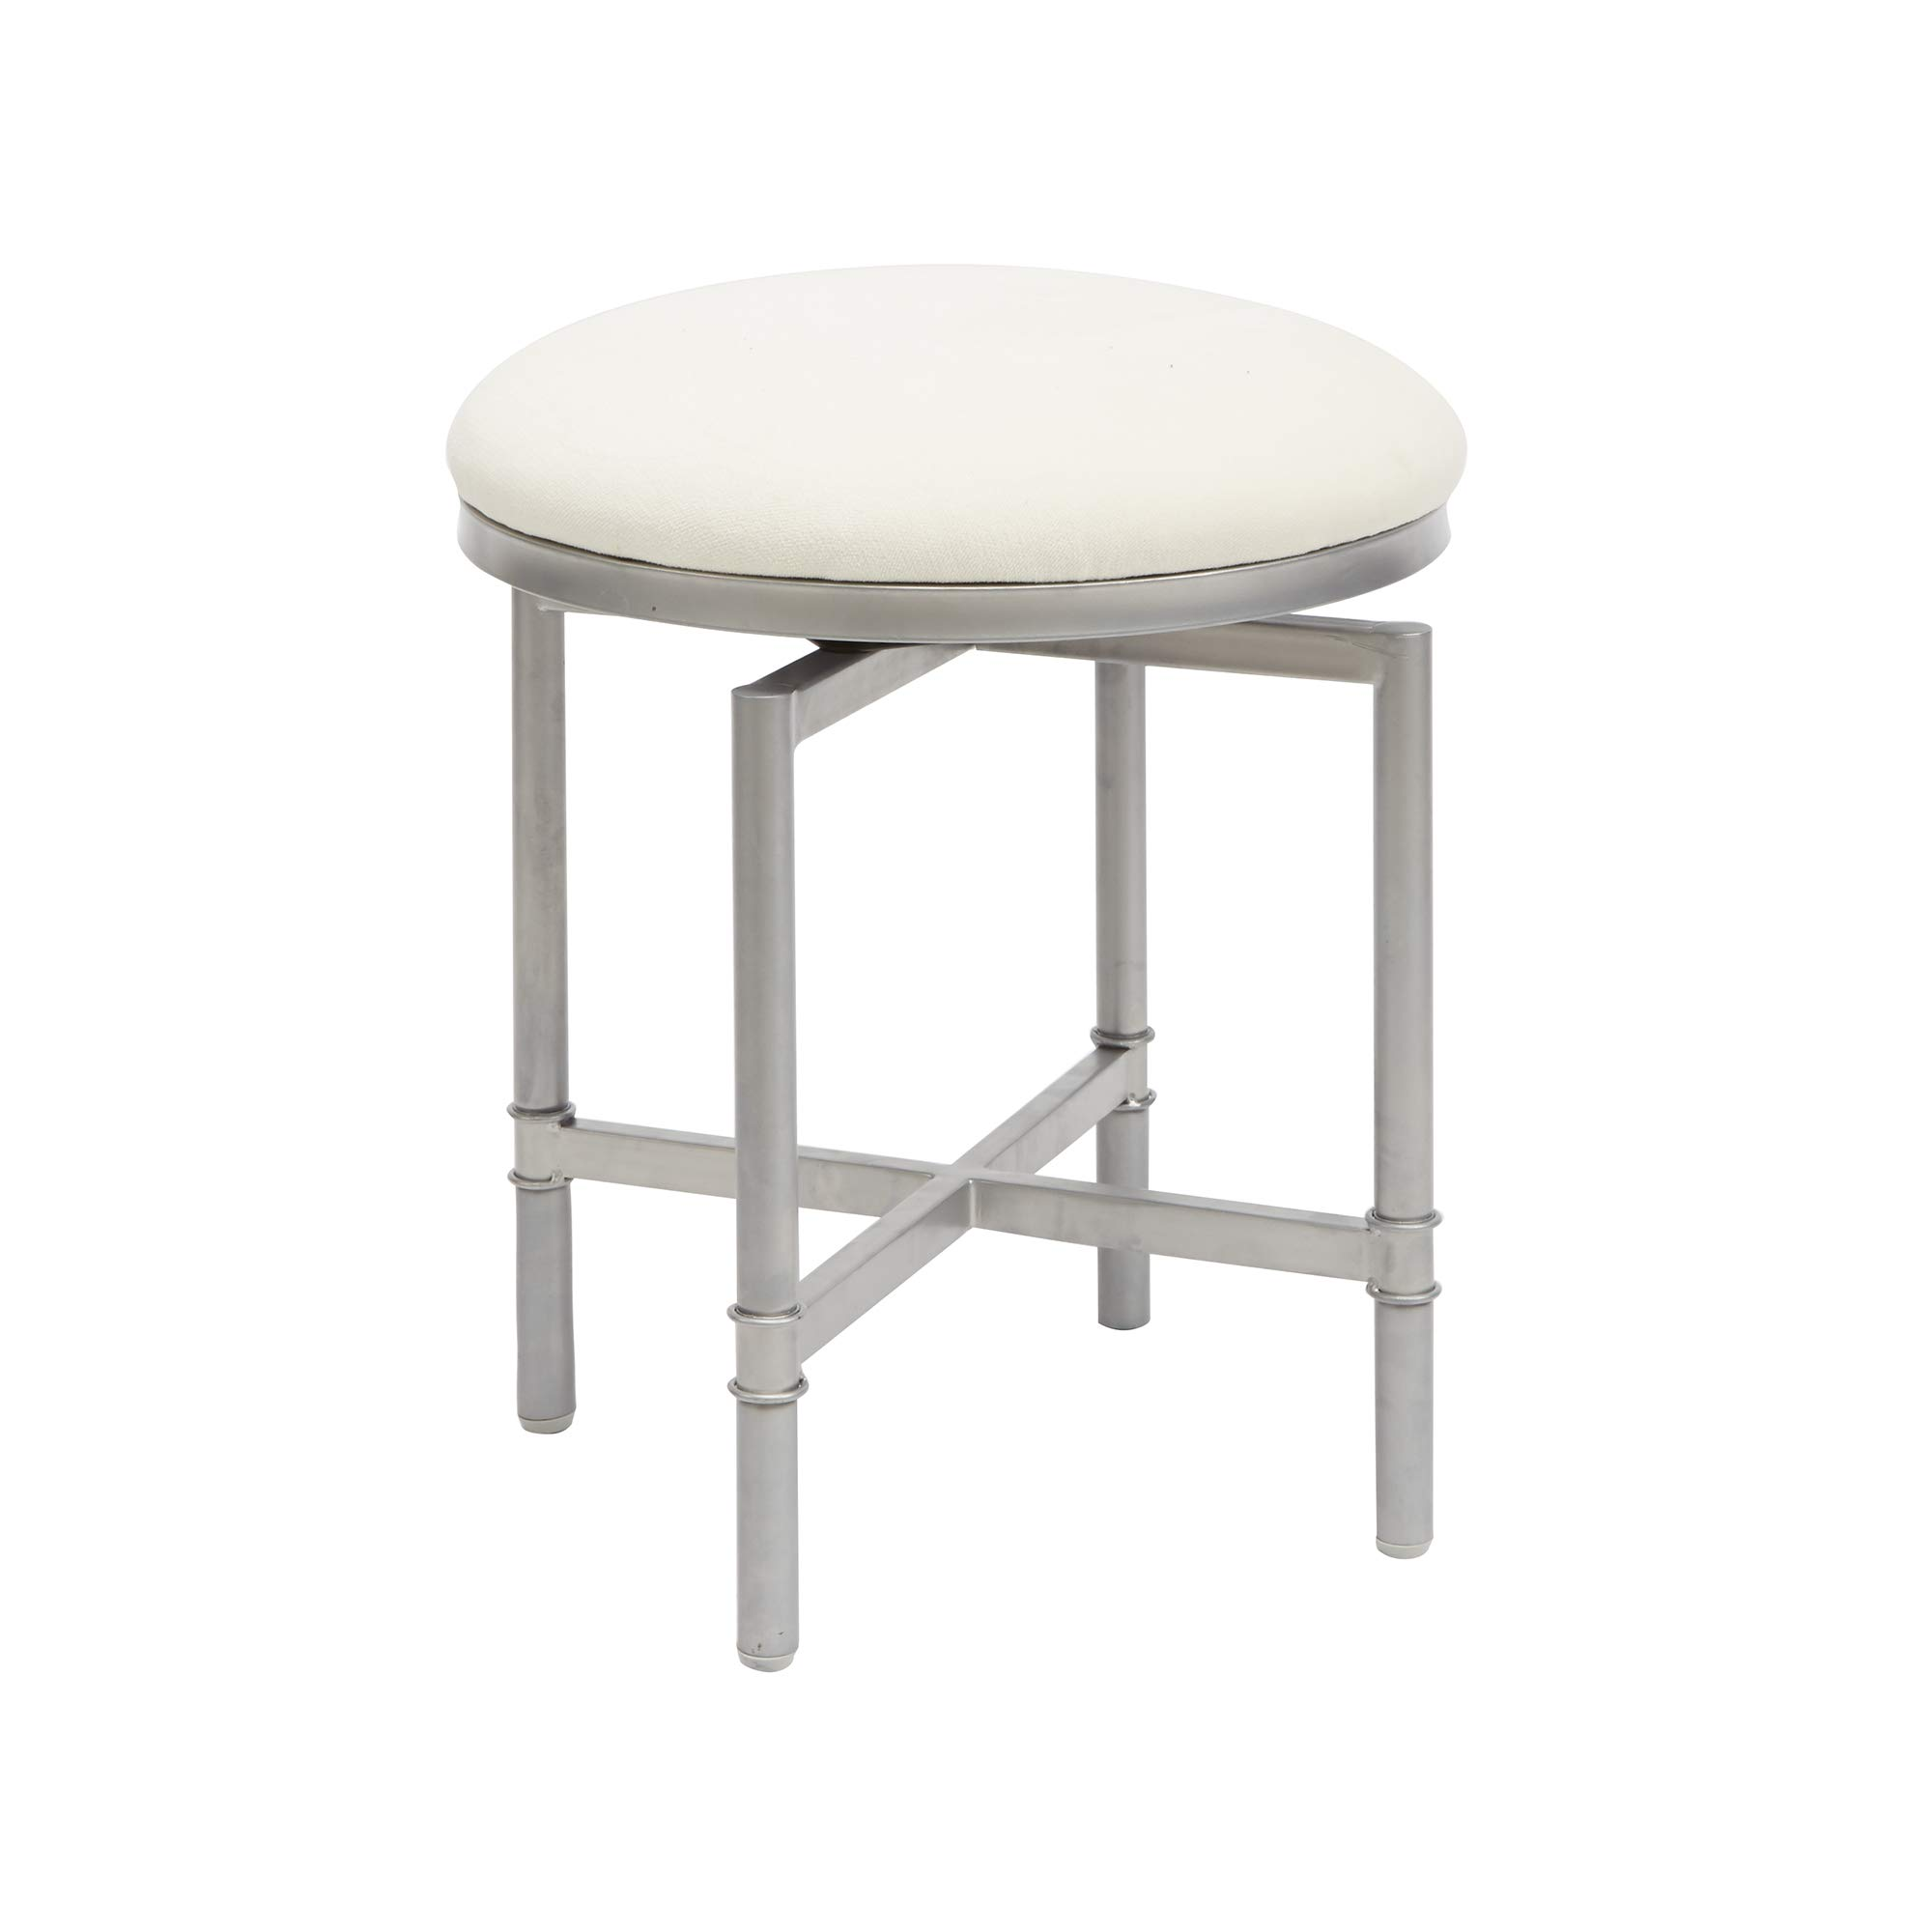 Silverwood CPFV1142 Vanity Bench, Nickel and Grey by Silverwood